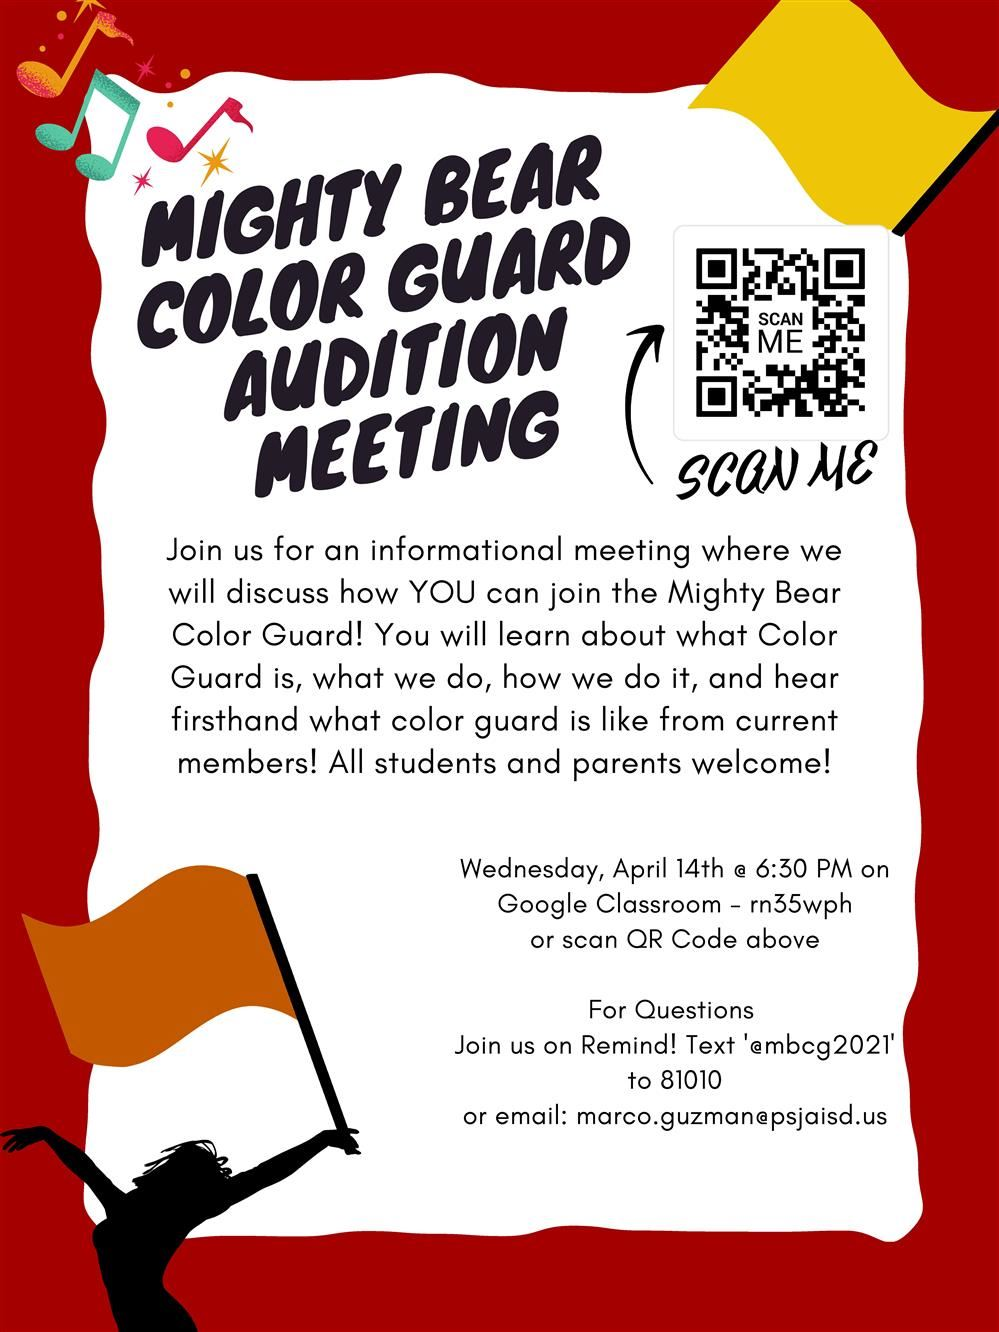 Mighty Bear Colorguard Audition Meeting